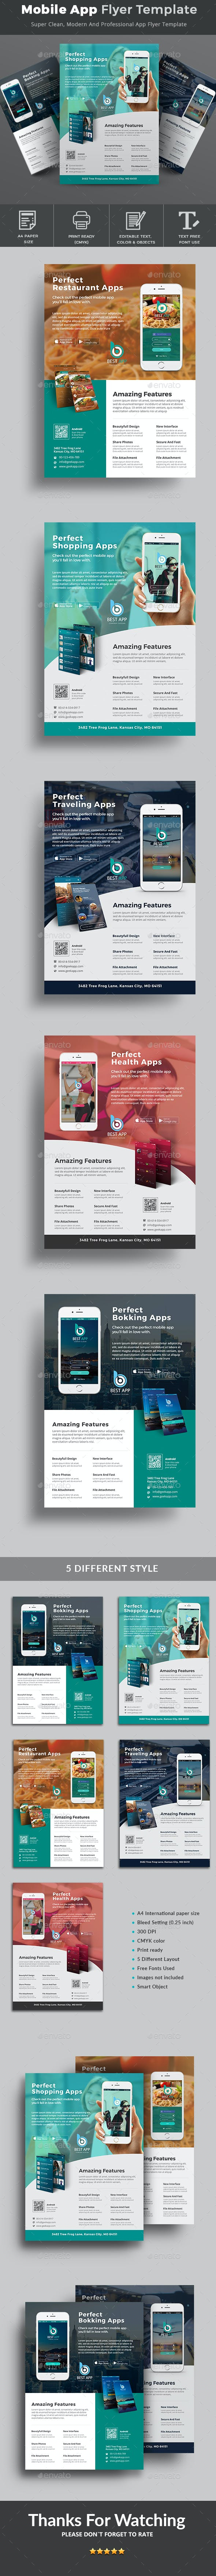 mobile app flyer template by classicdesignp graphicriver